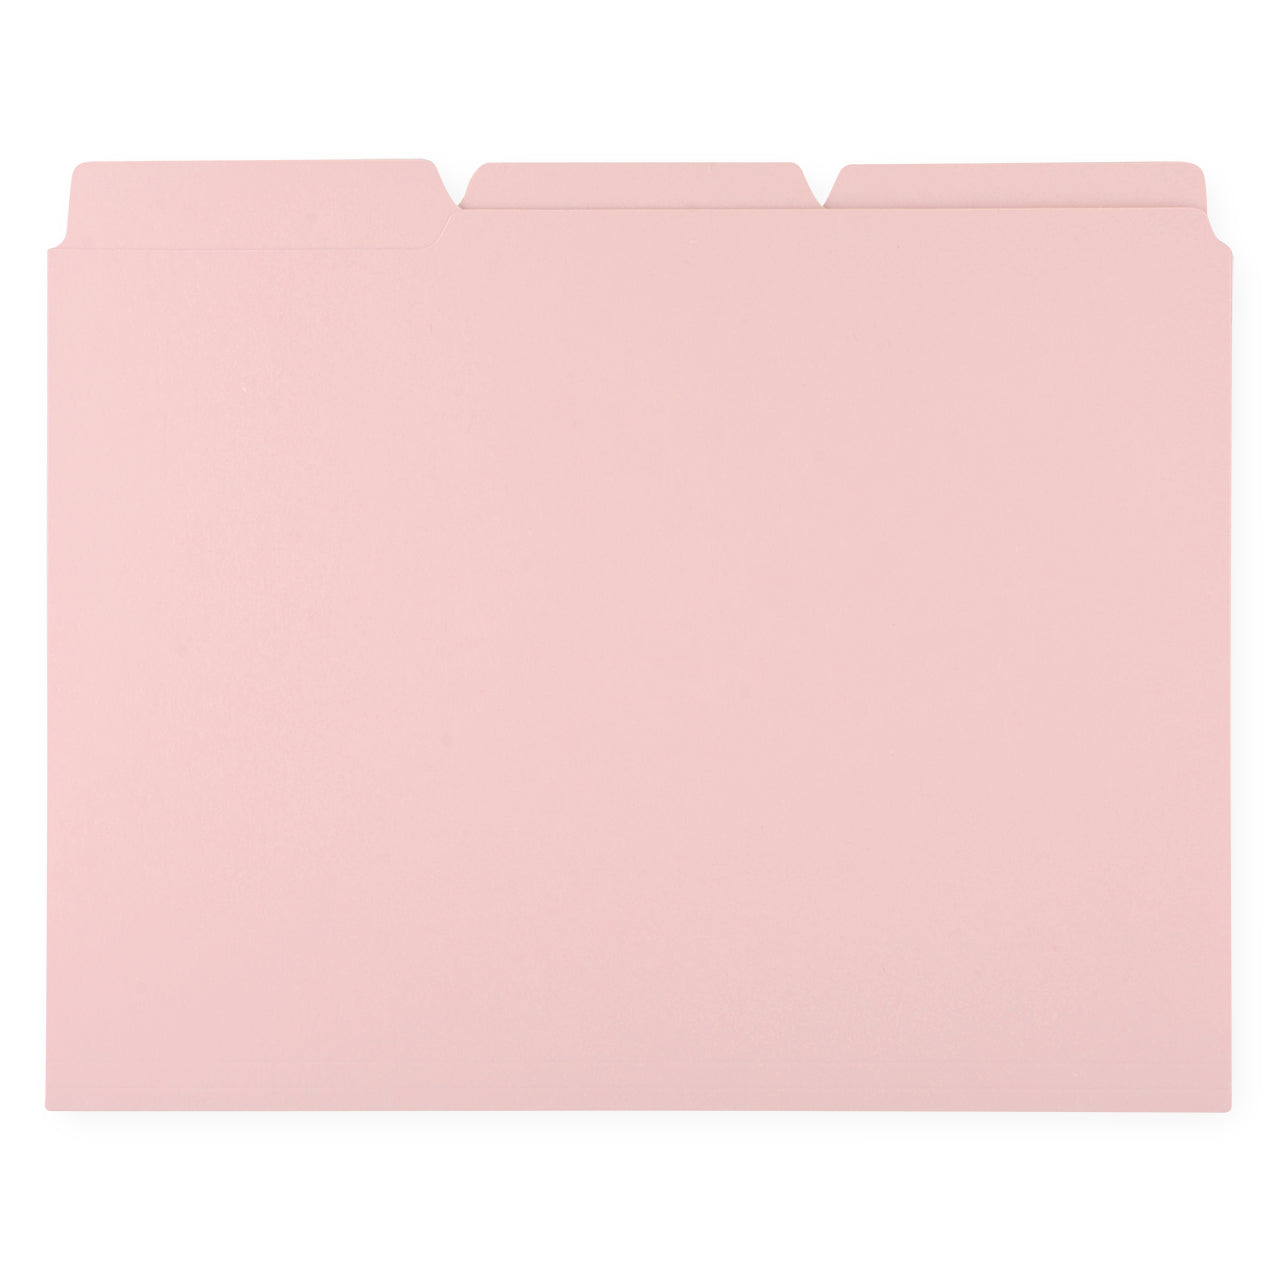 Shorthand File Folders | In Four Colors - GREER Chicago